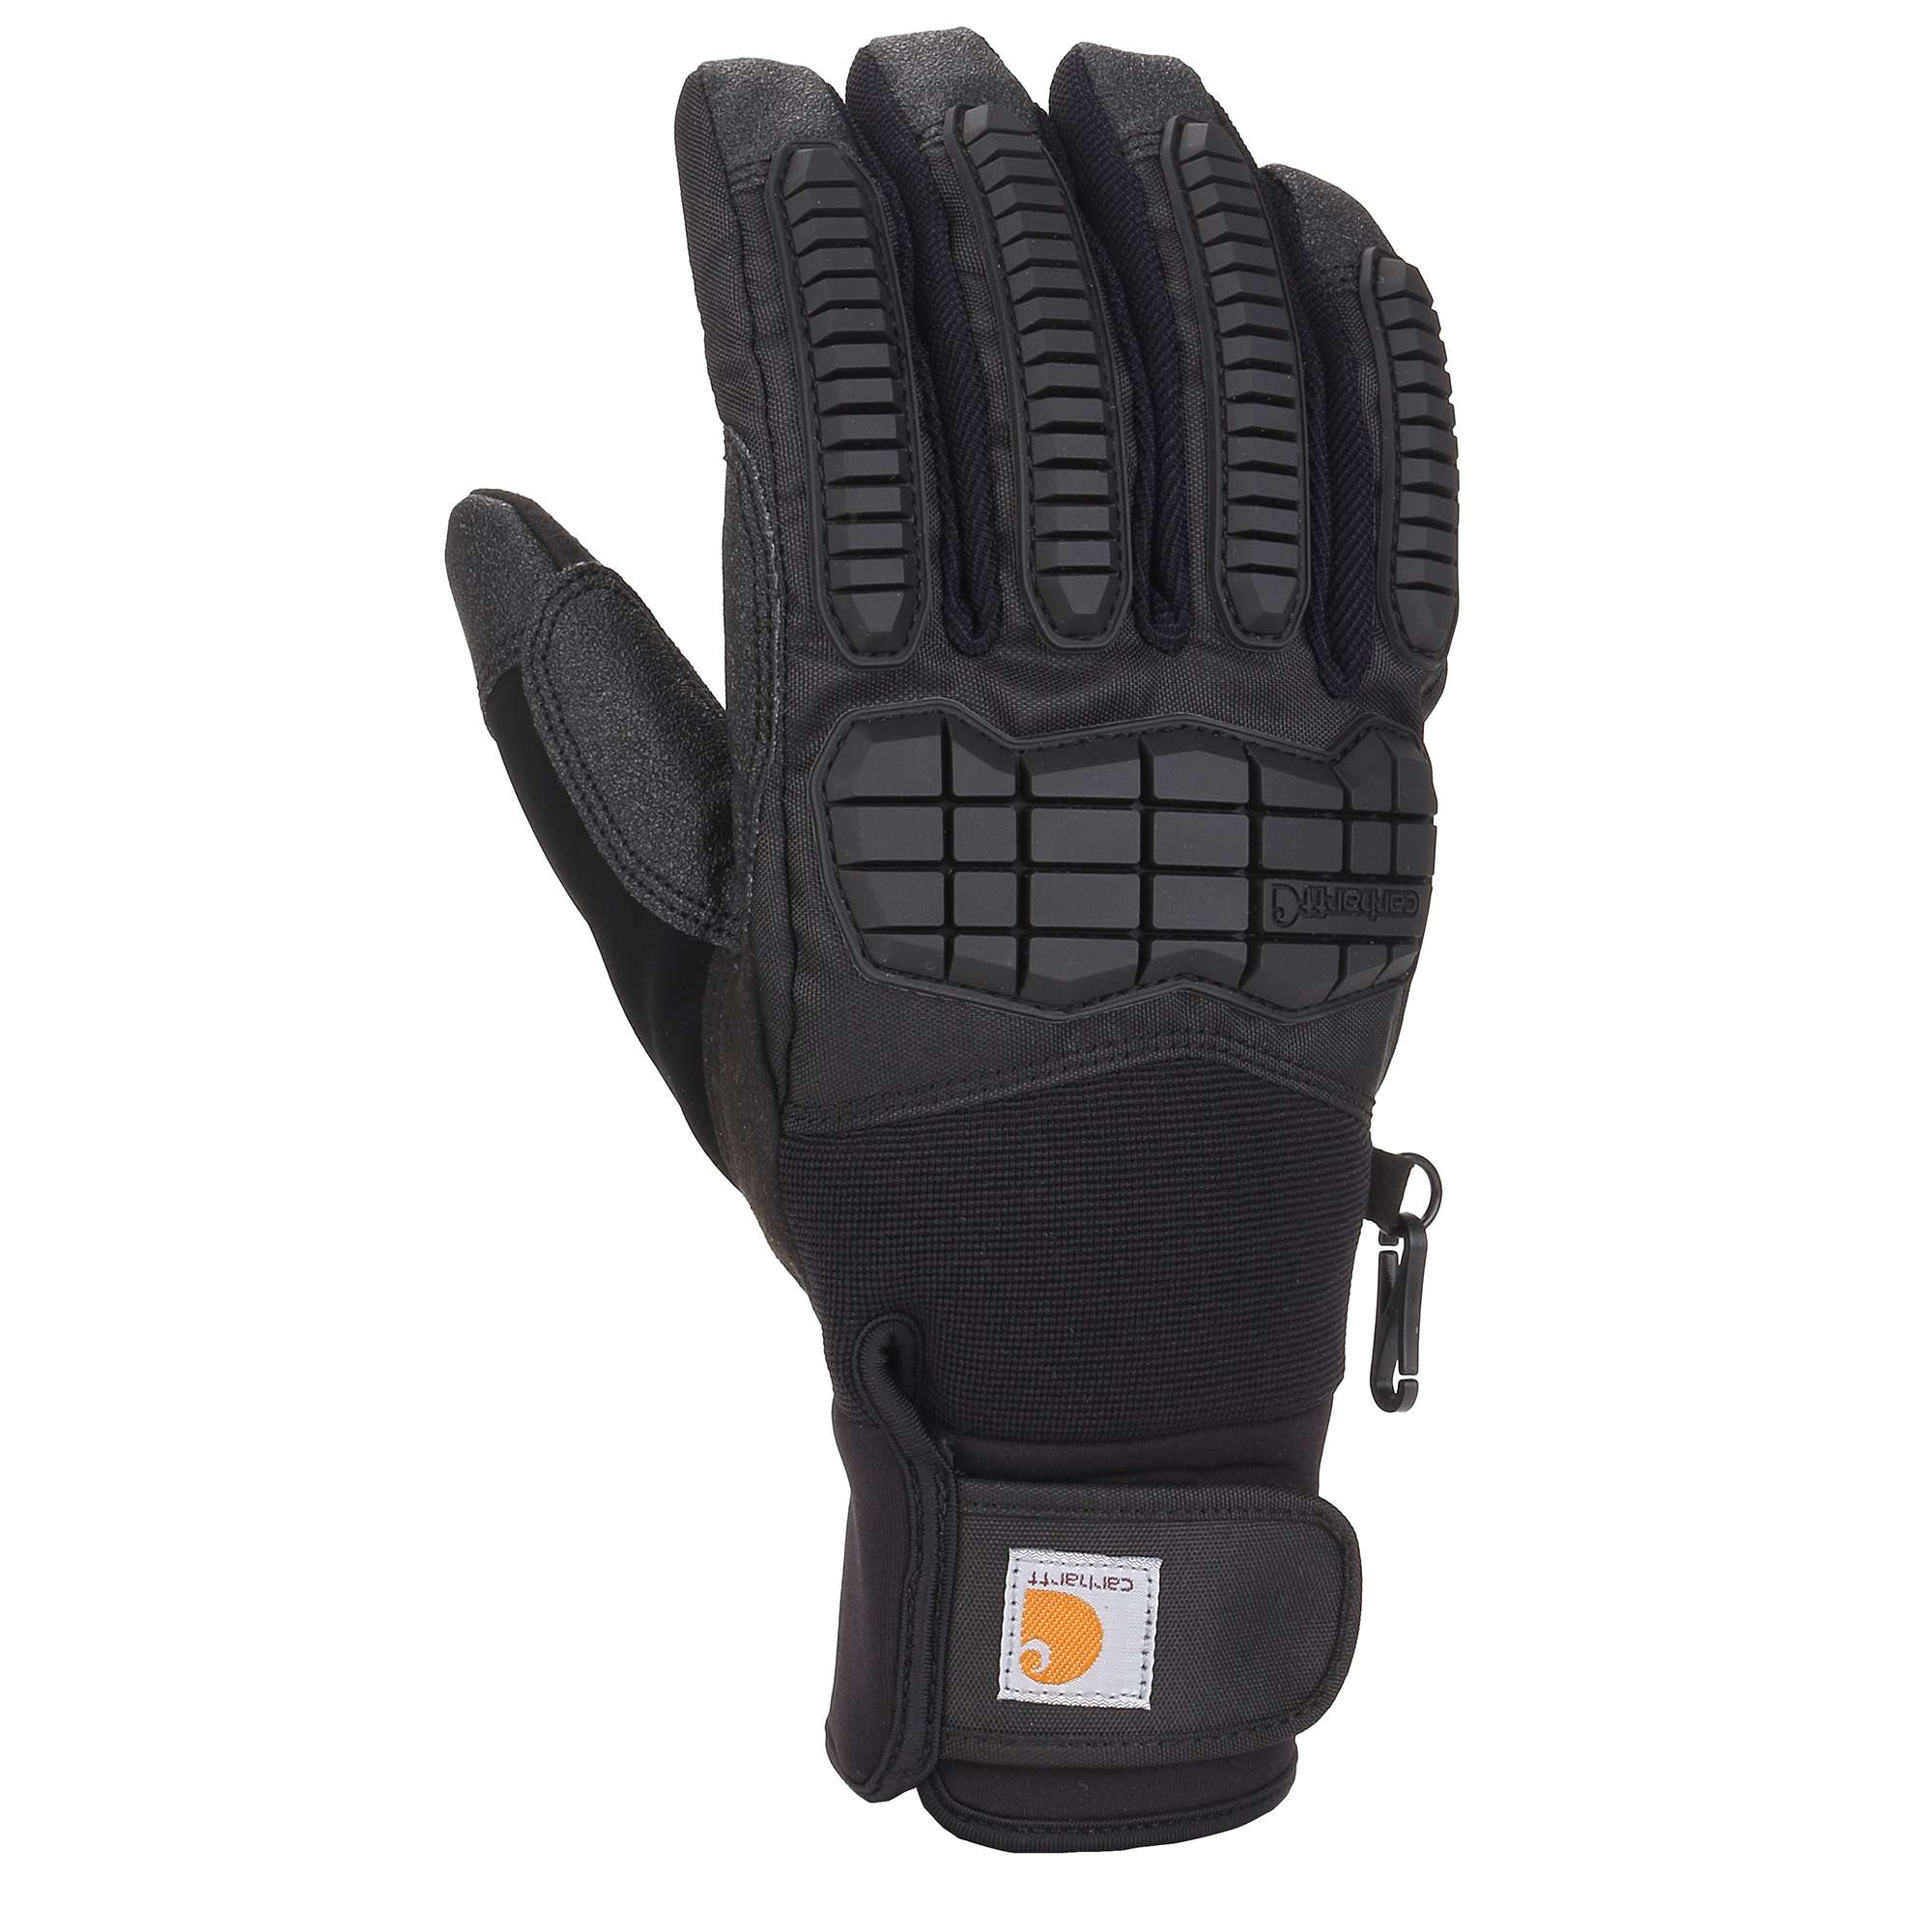 Carhartt Winter Ballistic Insulated Glove